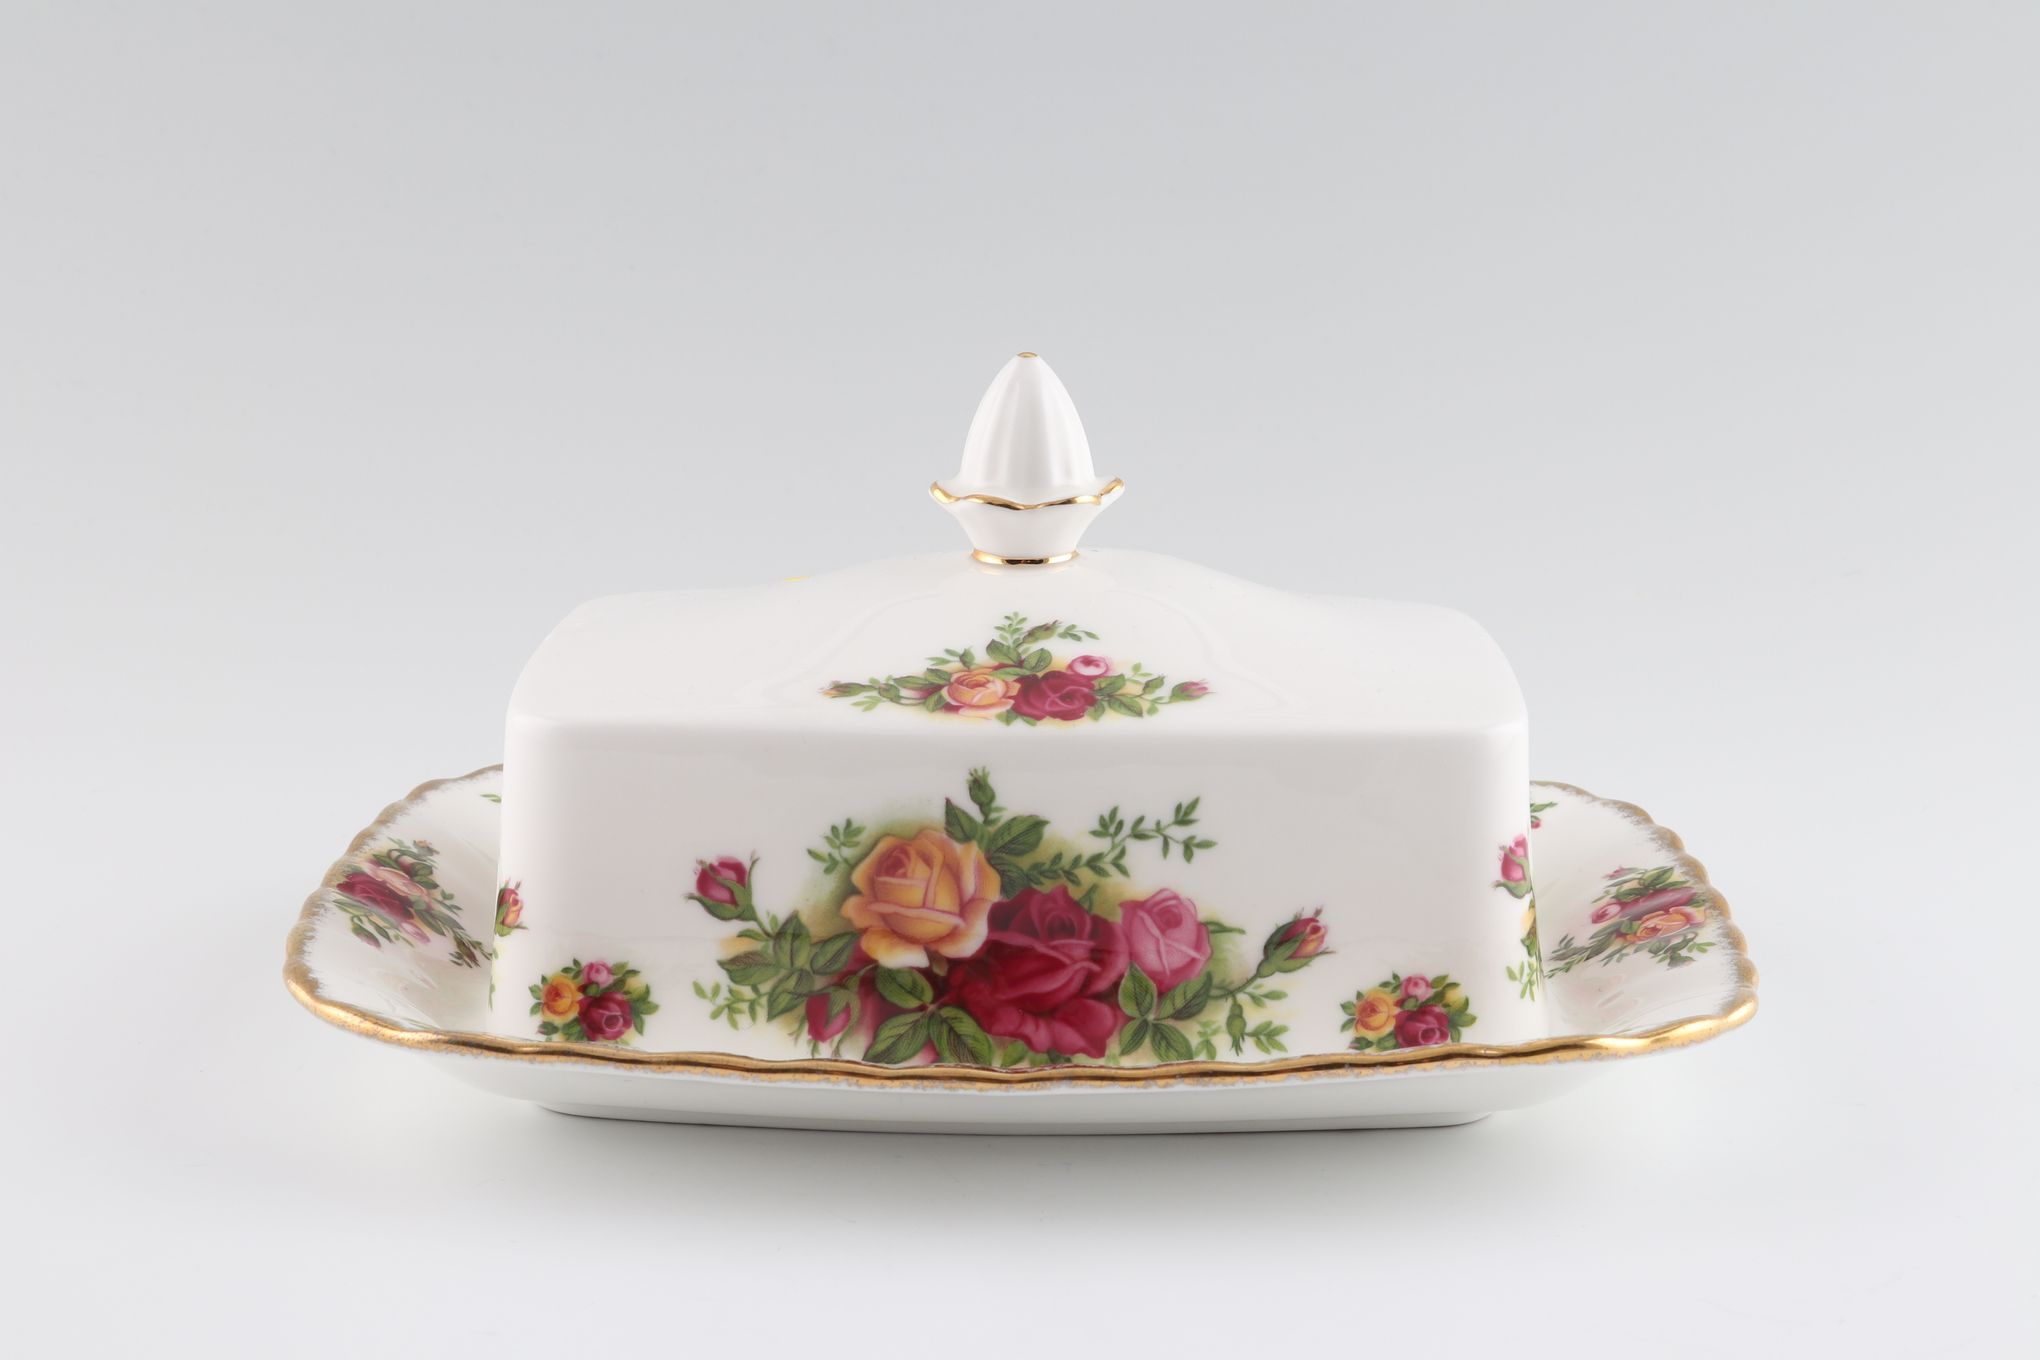 """Royal Albert Old Country Roses - Made in England Butter Dish + Lid 7 1/2 x 6"""" thumb 2"""